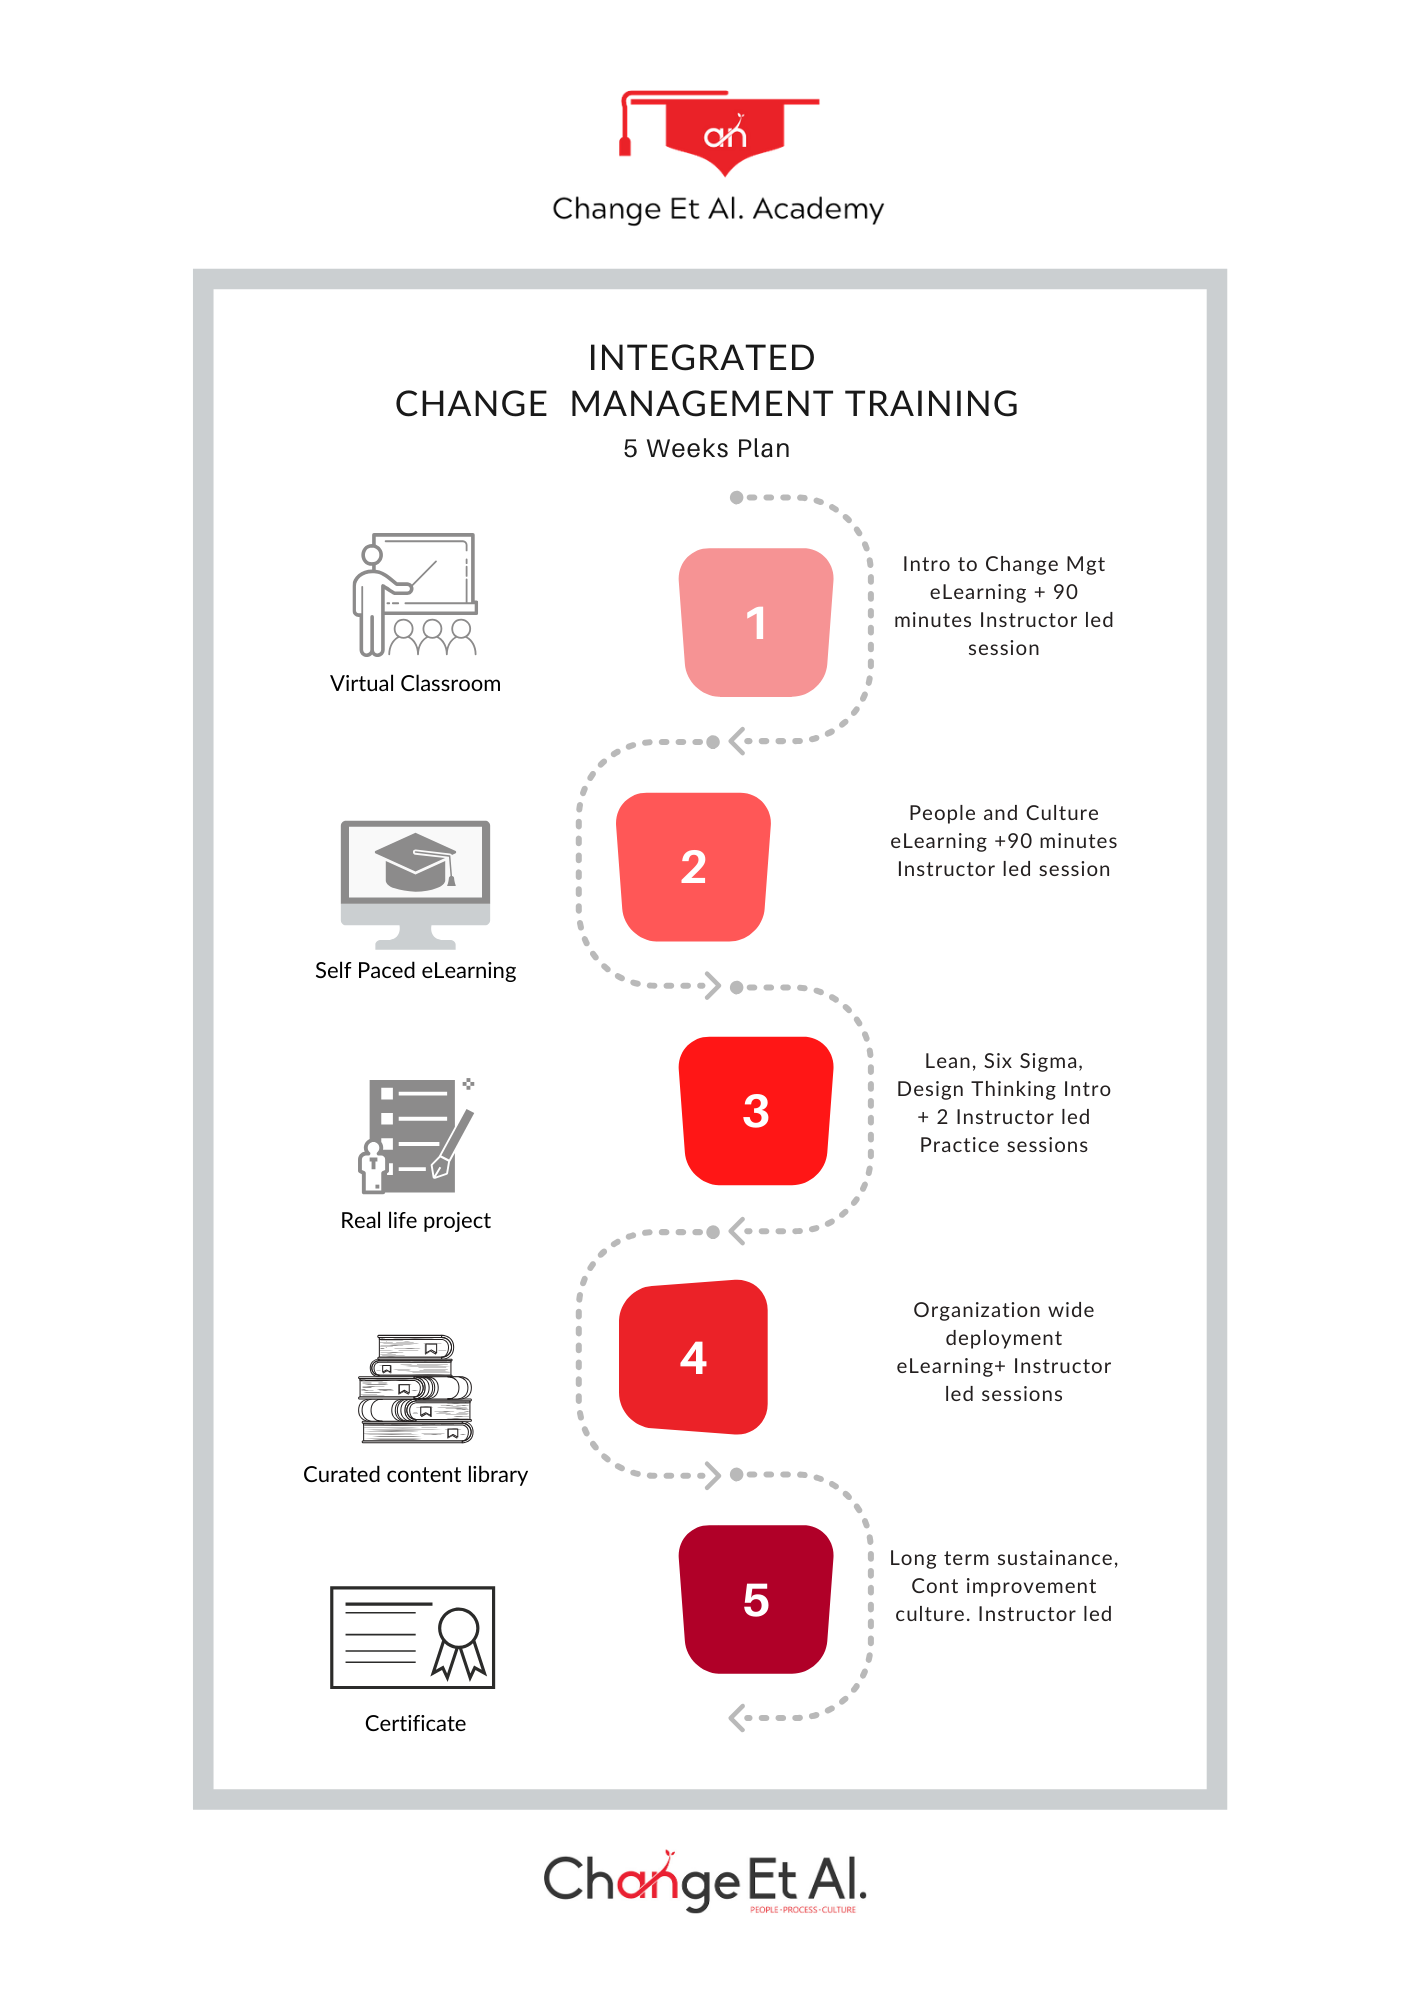 Integrated Change Management Training plan